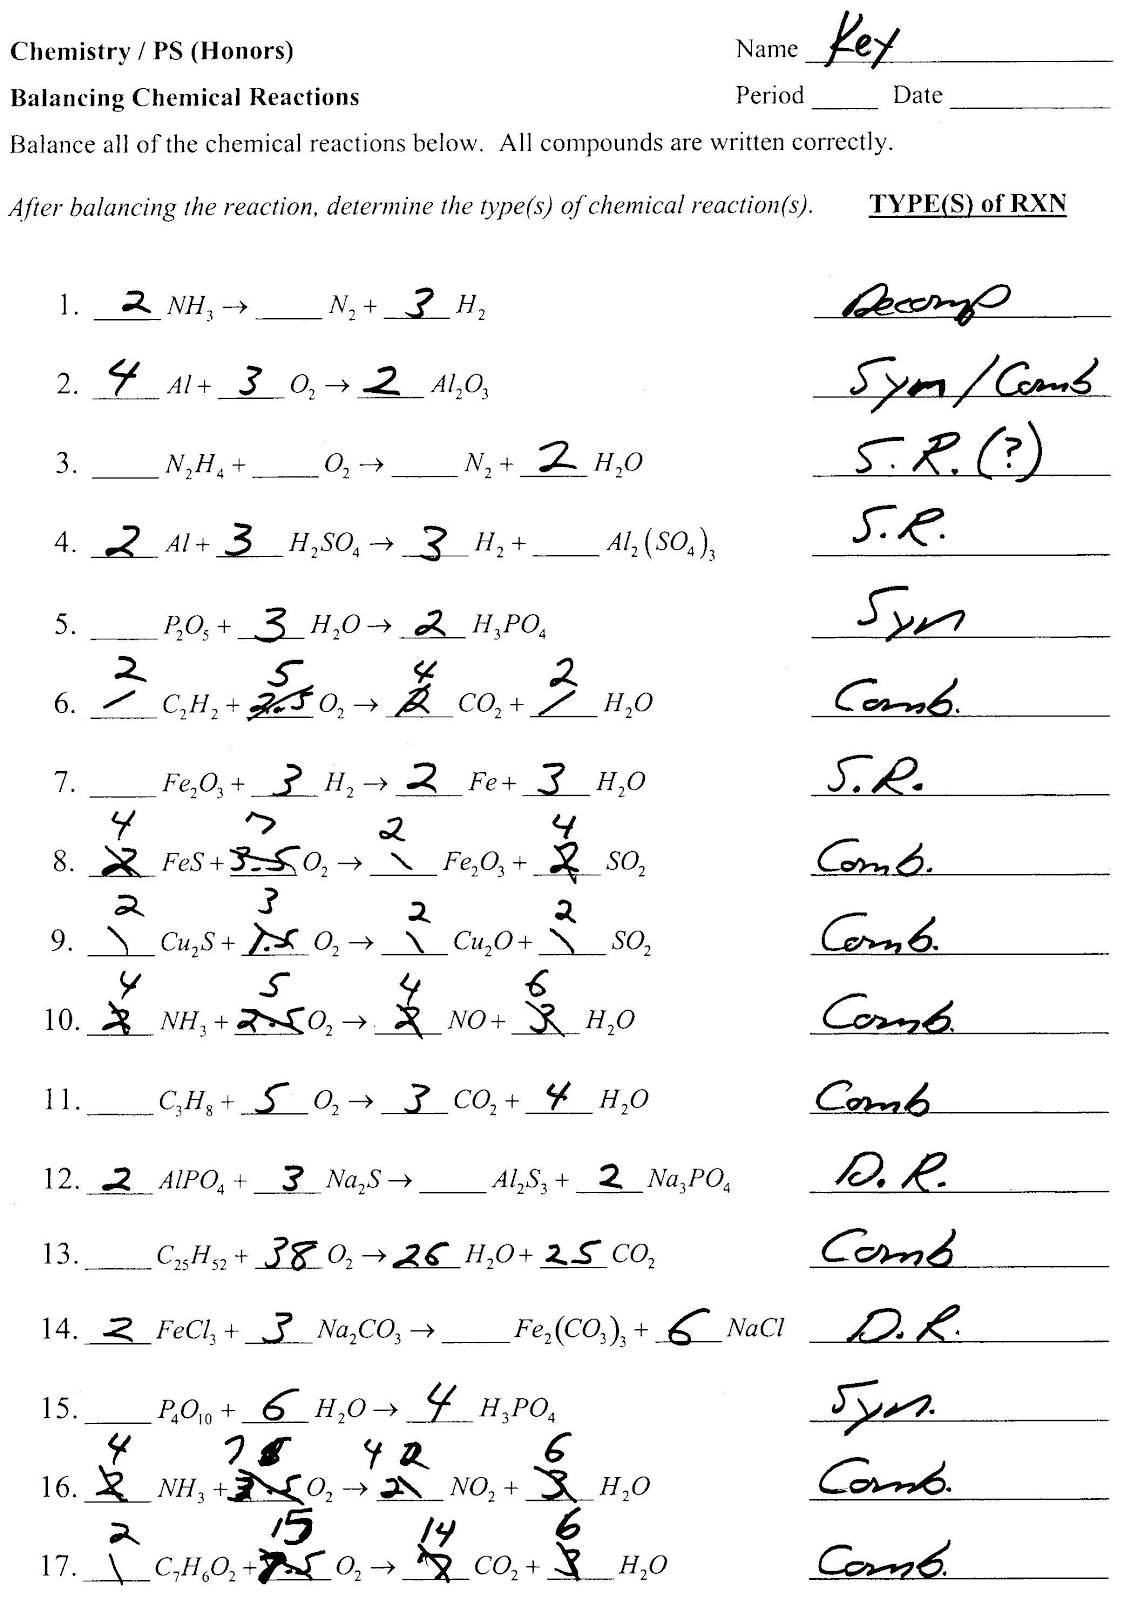 Mr Brueckners Chemistry Class HHS 201112 February 2012 – Balancing Chemical Equations Worksheet 1 Answers